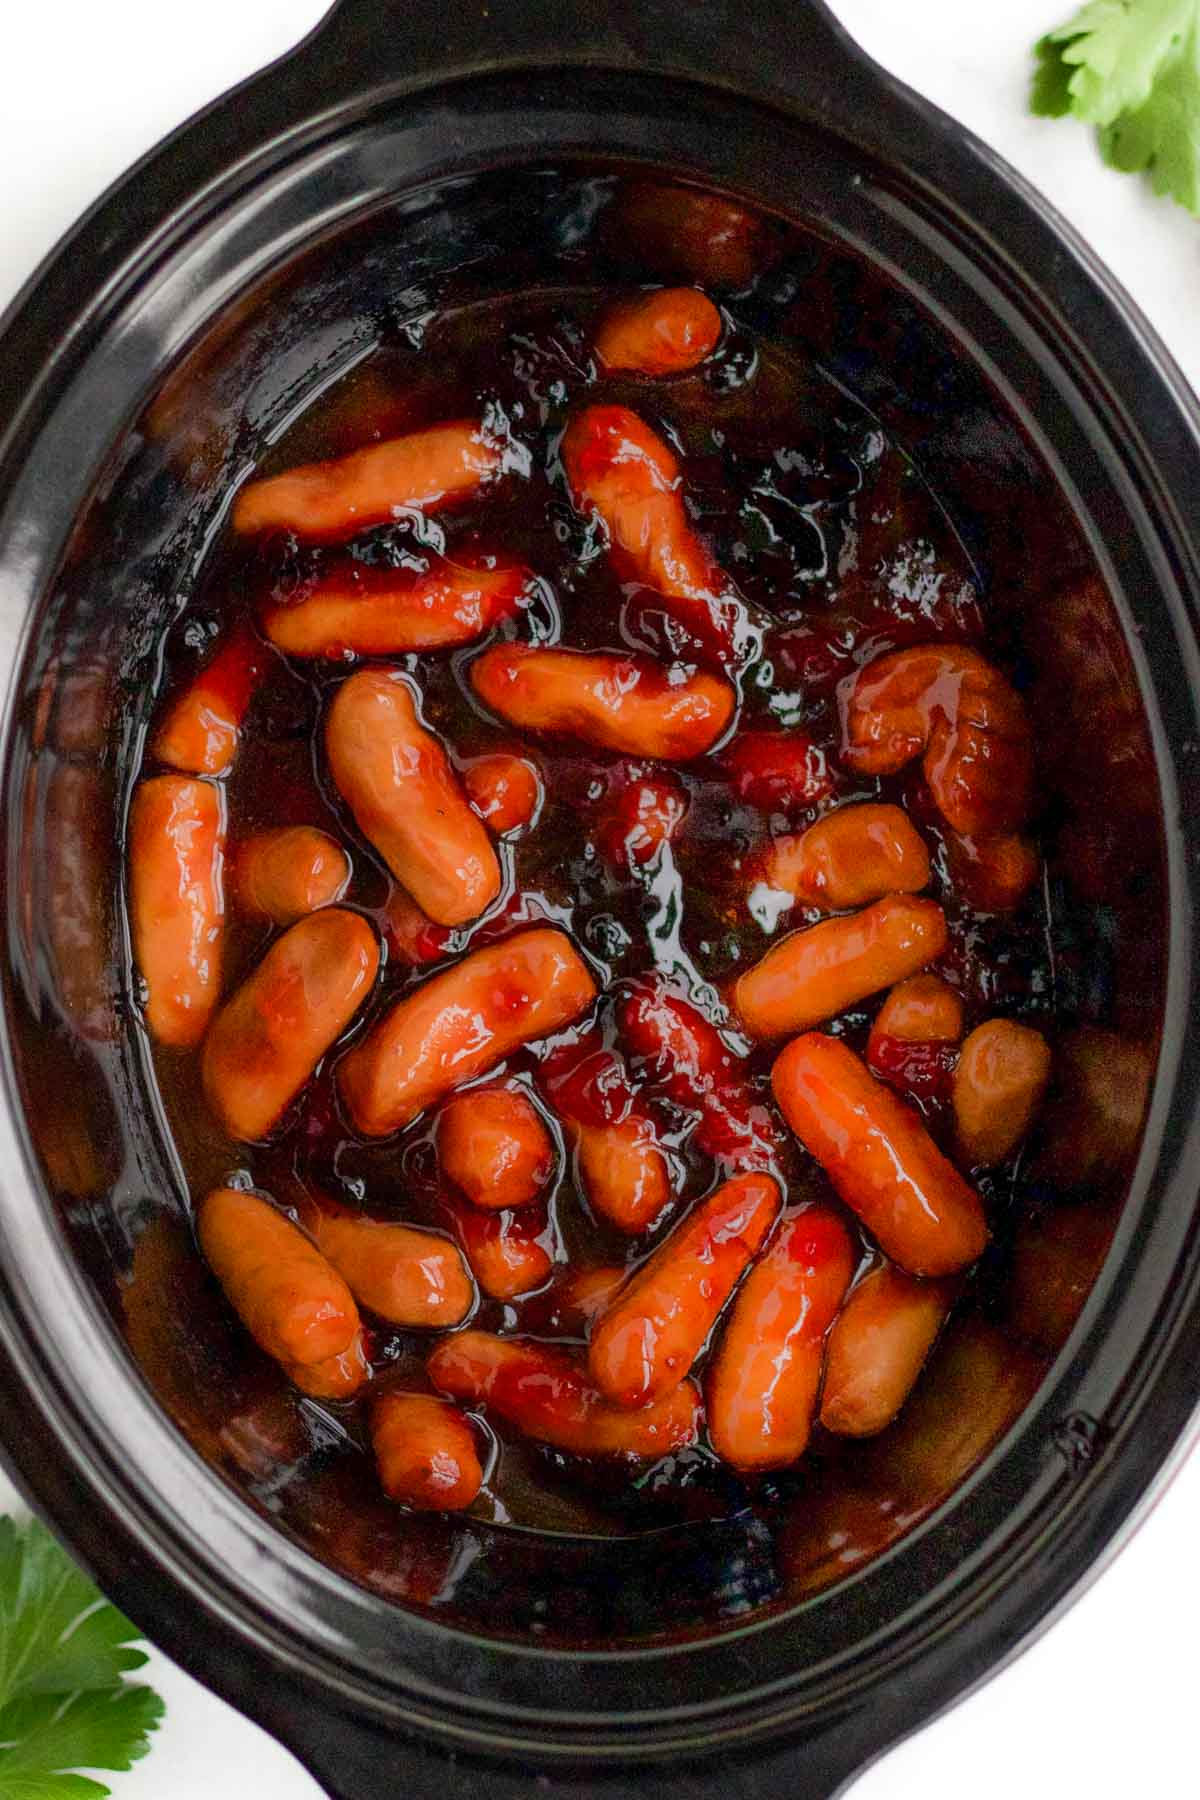 Little smokies with sauce ingredients in the slow cooker before cooking.